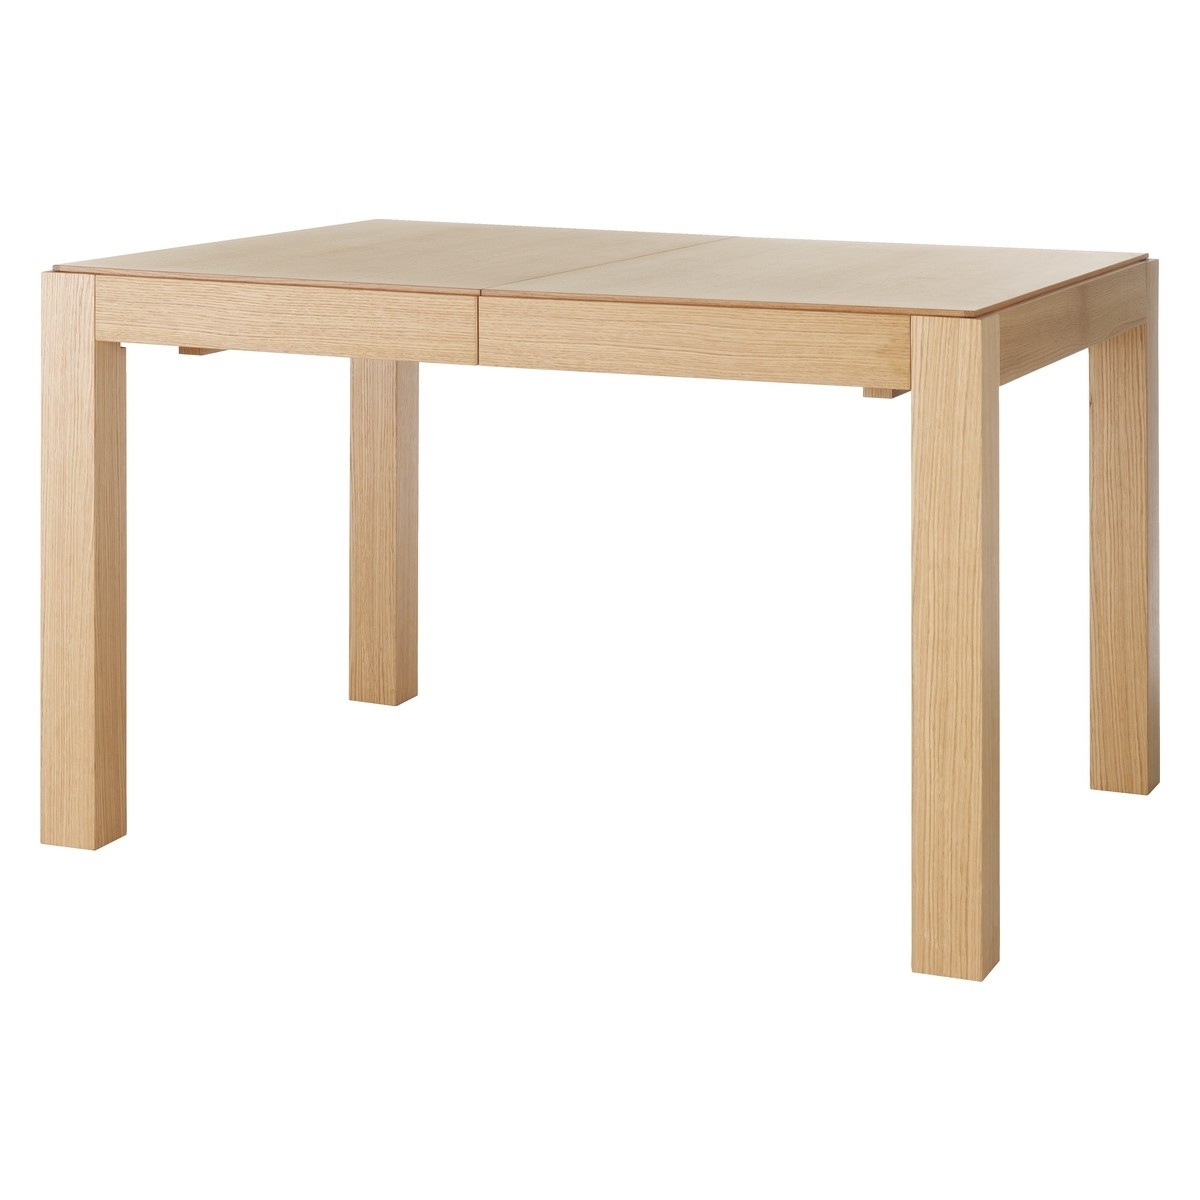 Buy Now At Habitat Uk With Regard To 2018 Extending Dining Tables Sets (View 1 of 25)